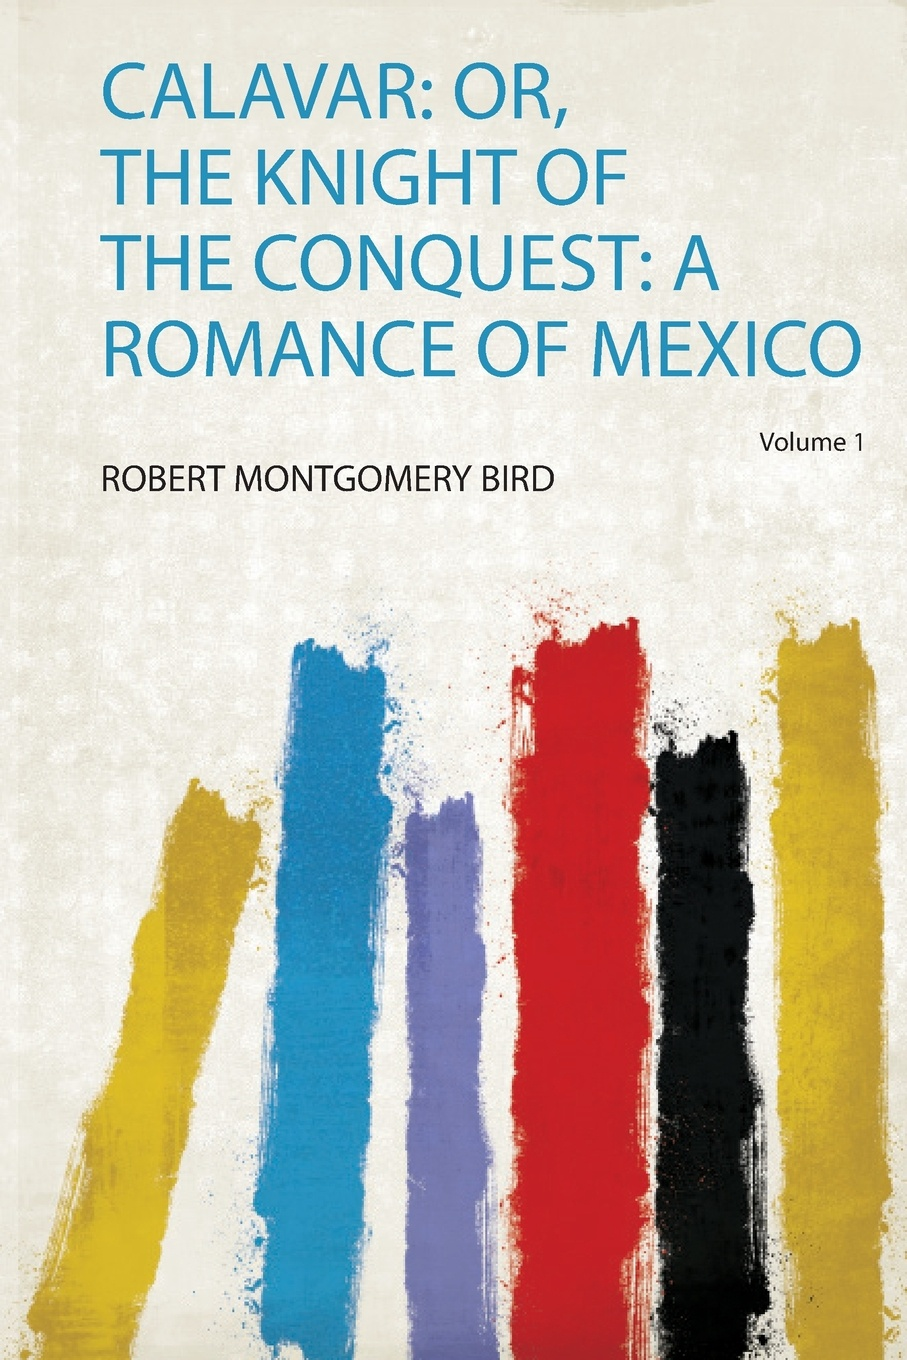 Calavar. Or, the Knight of the Conquest: a Romance of Mexico bird robert montgomery calavar or the knight of the conquest a romance of mexico